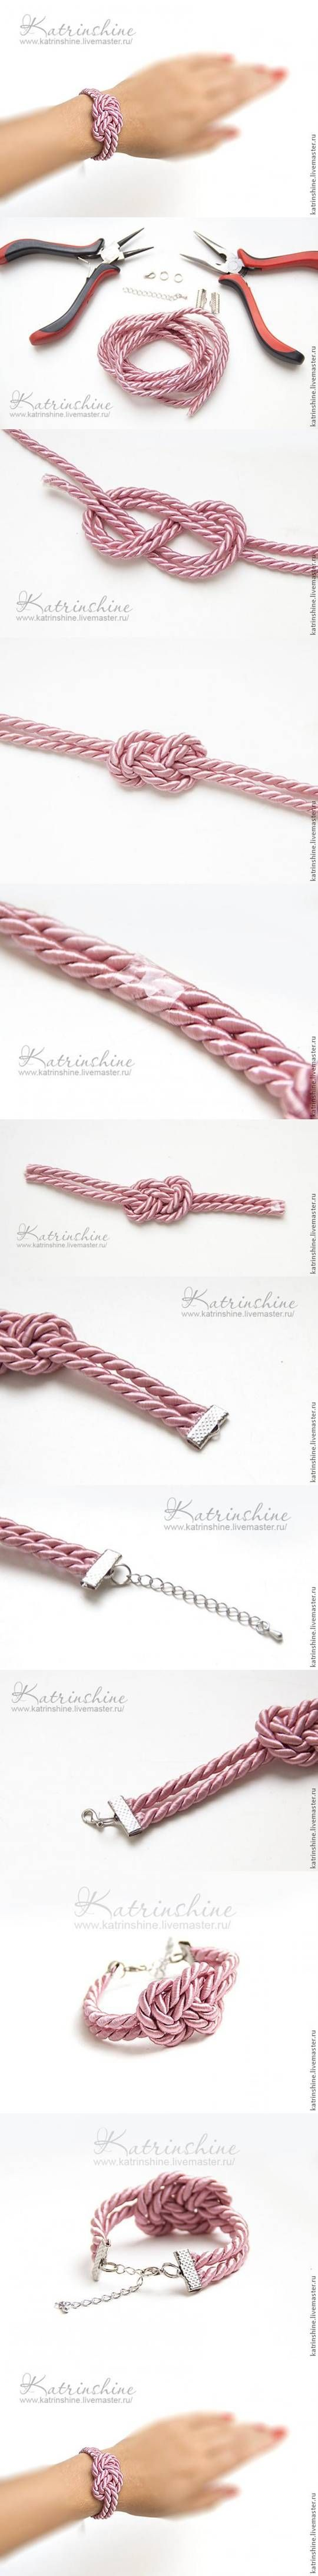 DIY Bracelet with a Knot of Silk Cord